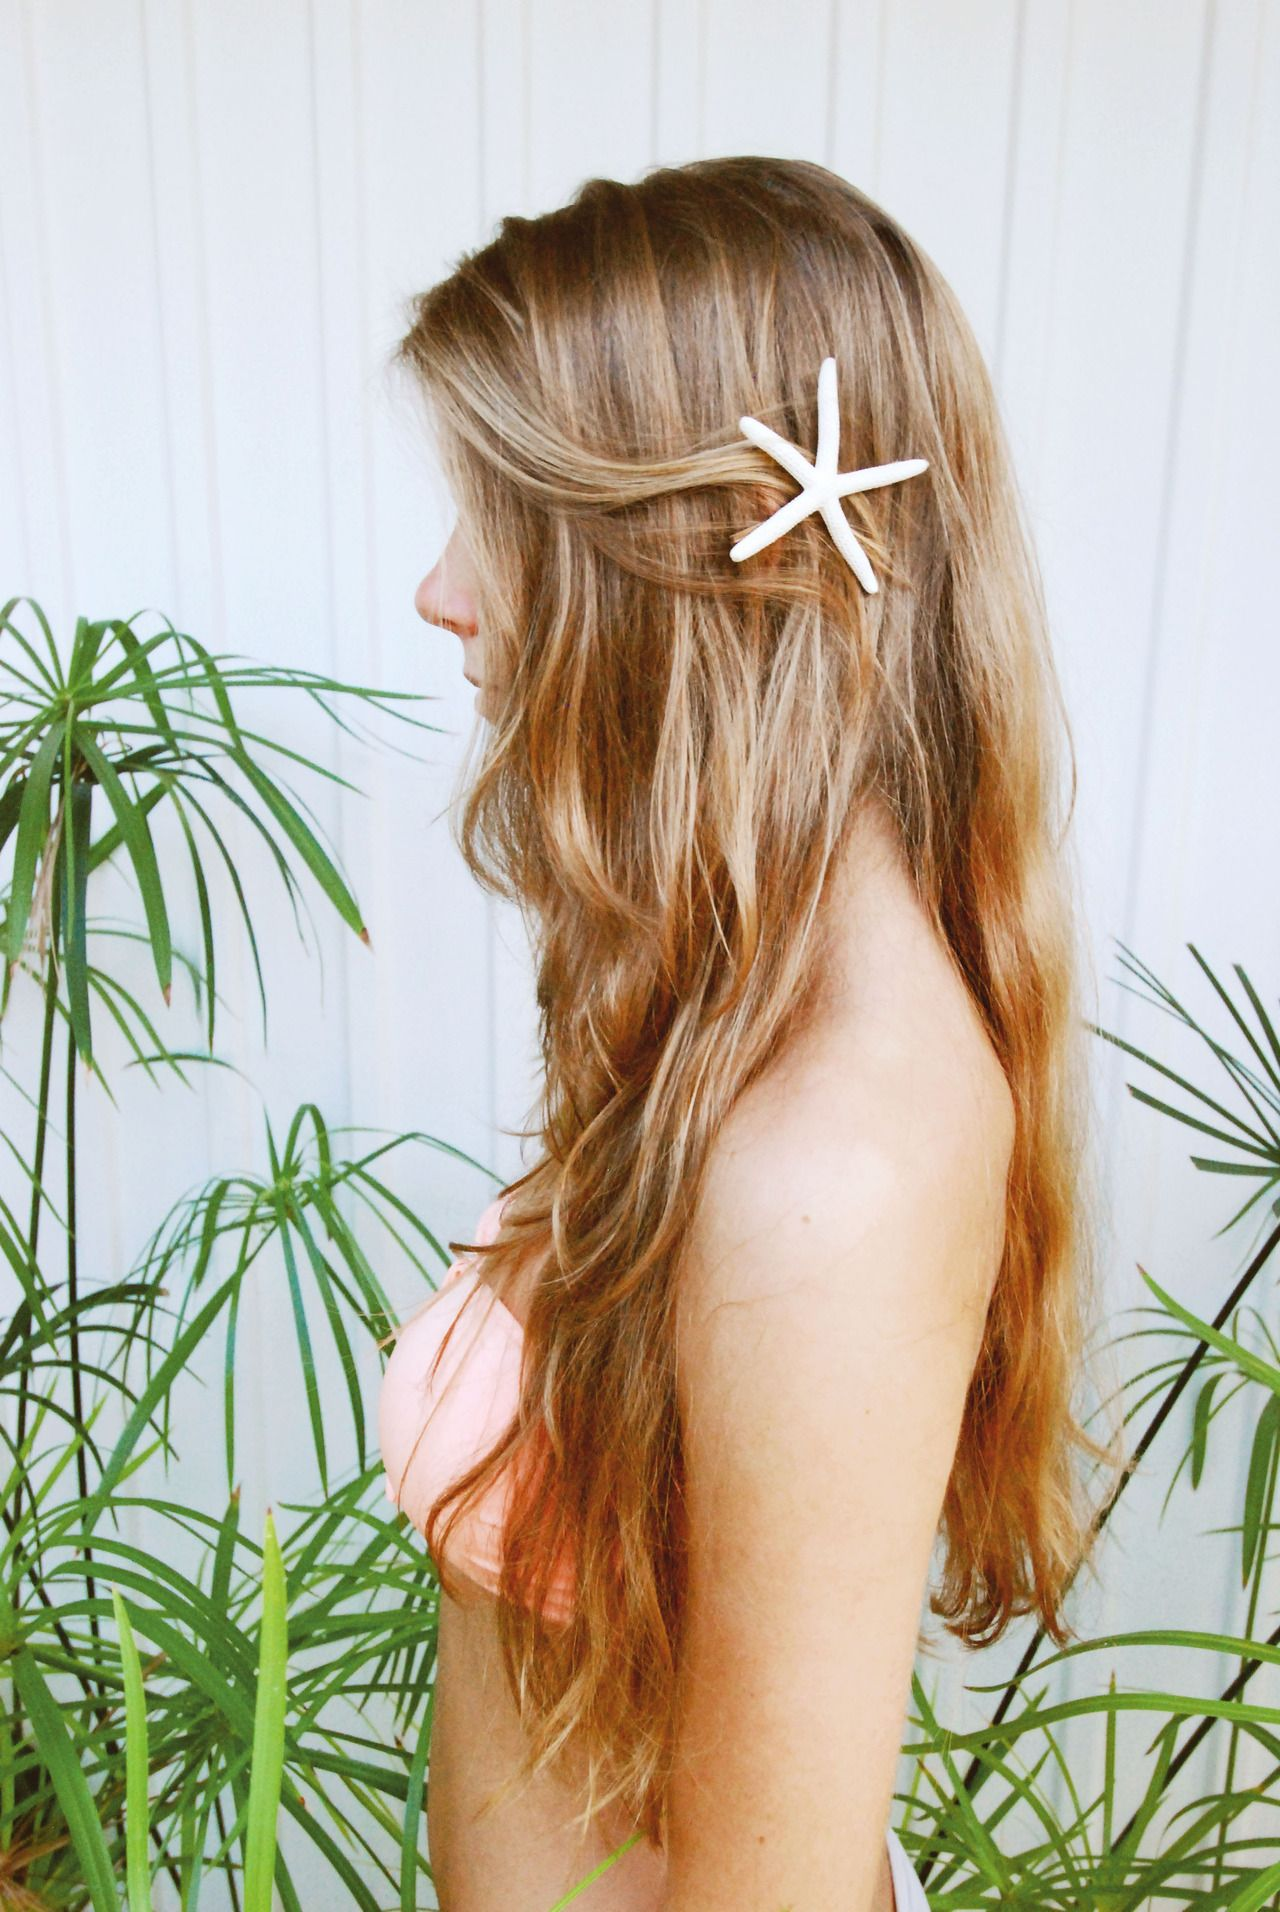 Instagram Insta-Glam: BeachHair